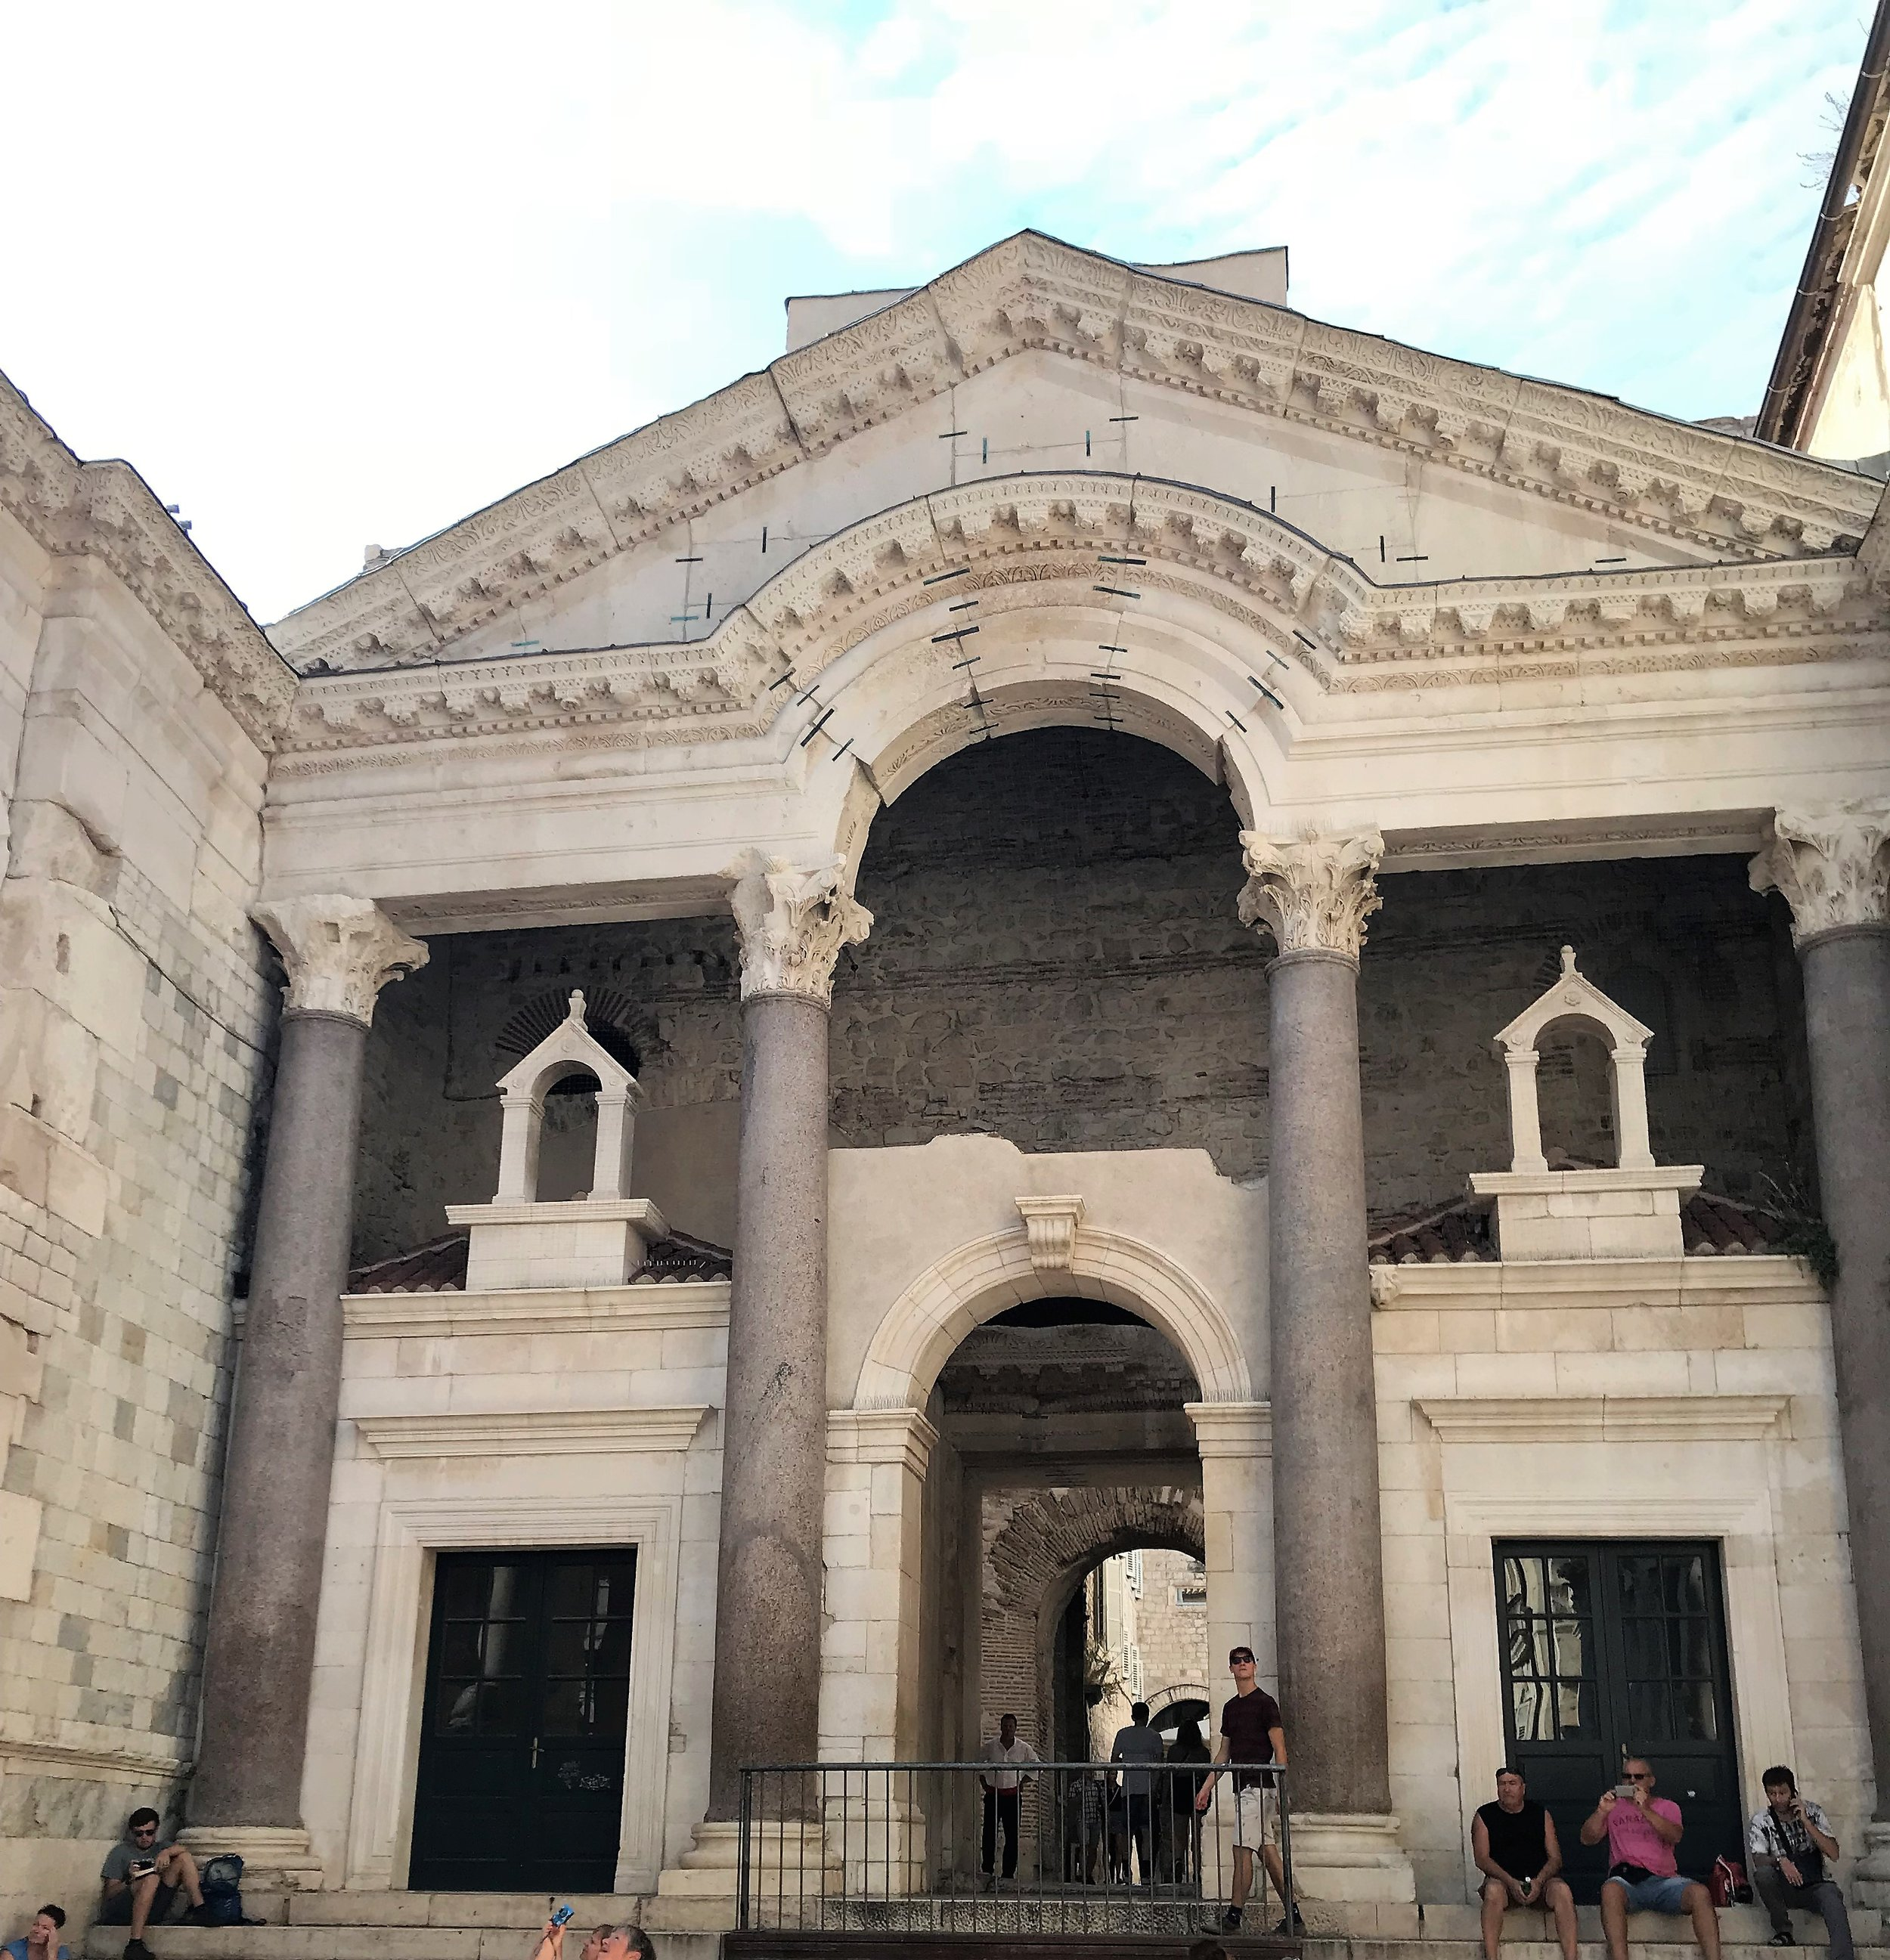 The central square of the Palace of Diocletian in Split, Croatia